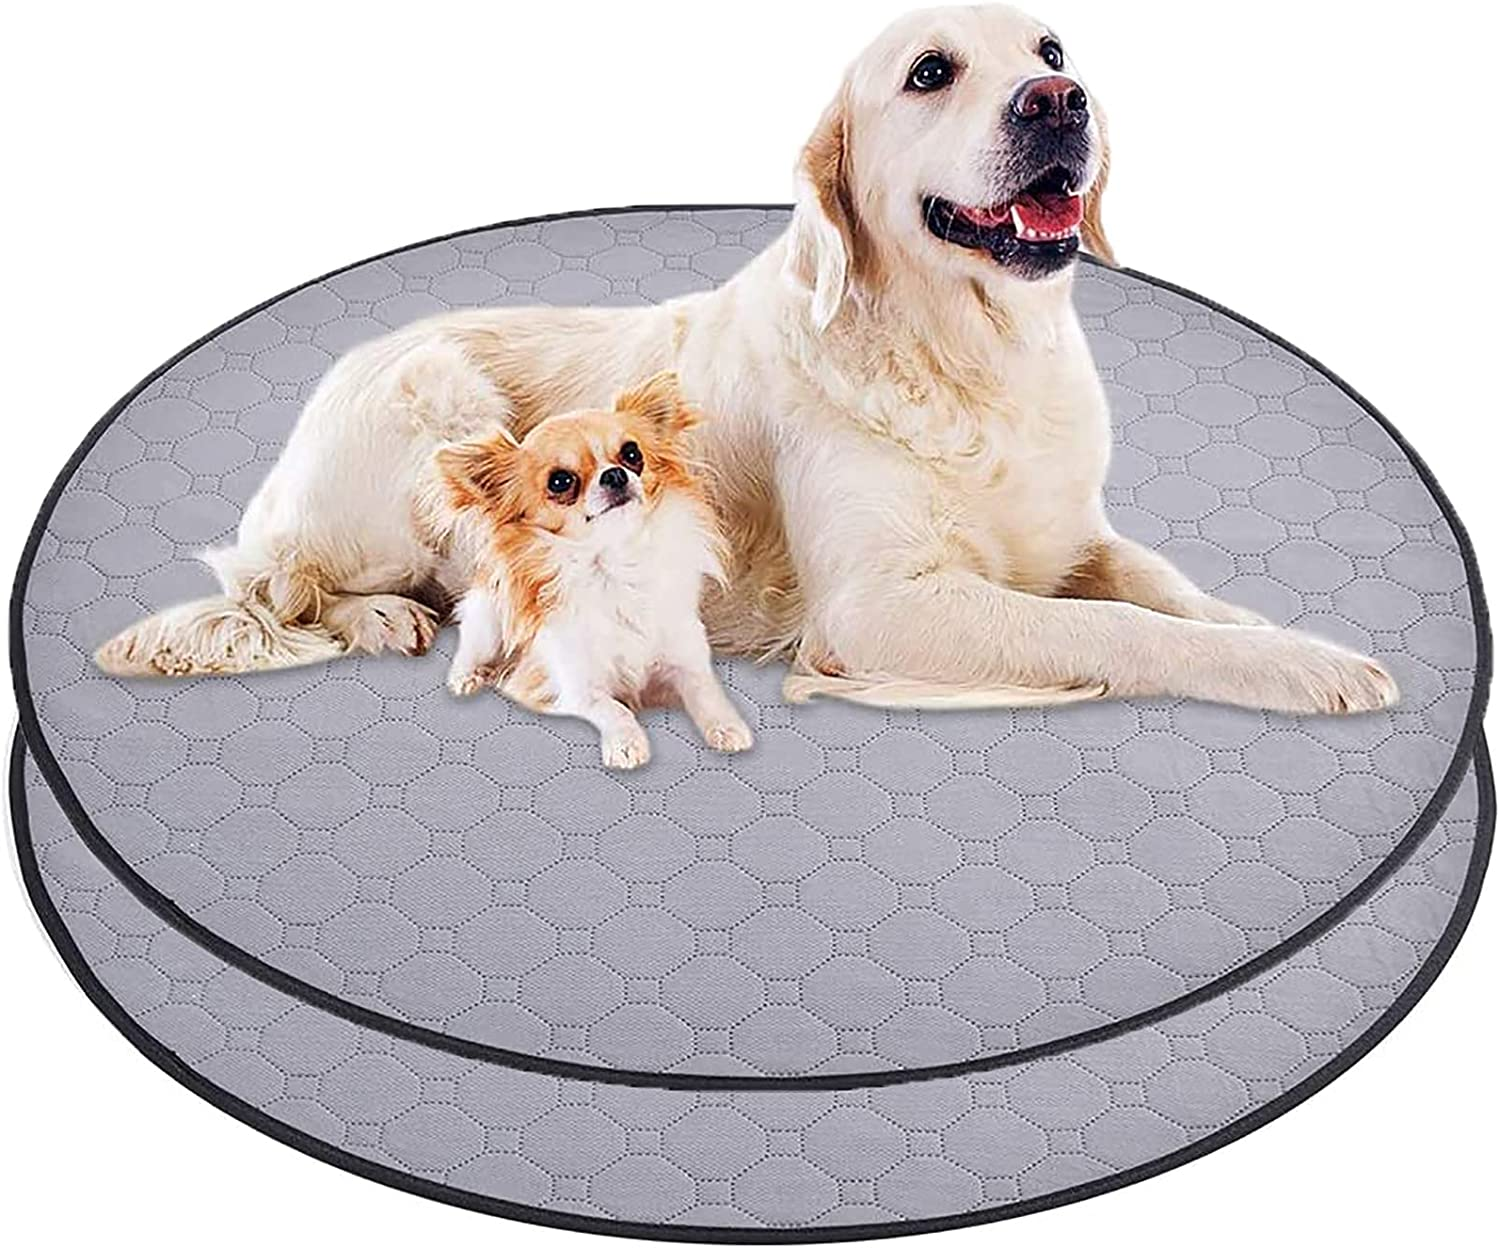 DUDUPE Round Washable Pee Pads for New York Mall Max 86% OFF Dogs 36